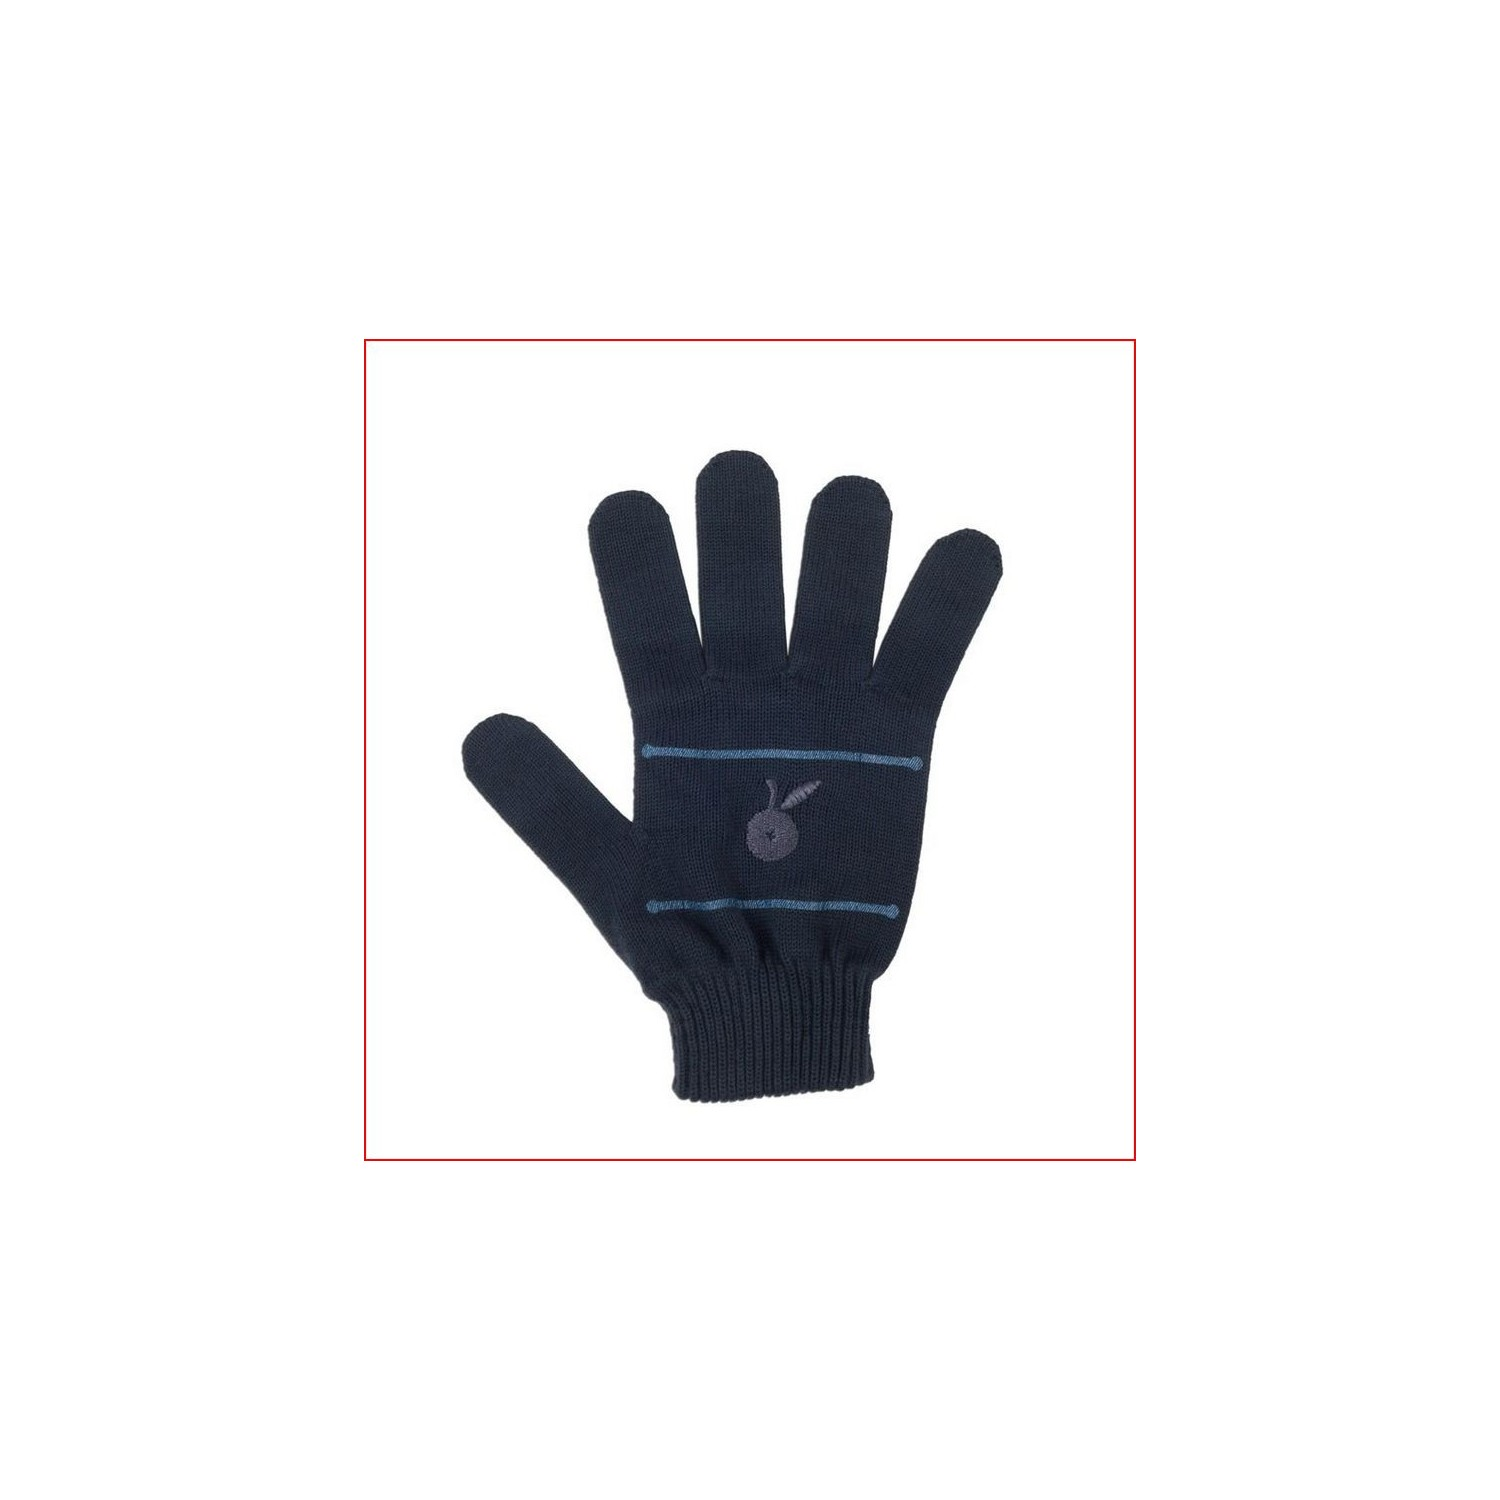 Tribeca Ny My Glove Guanti Touch Sport Taglia 1 BLUE Made in Italy